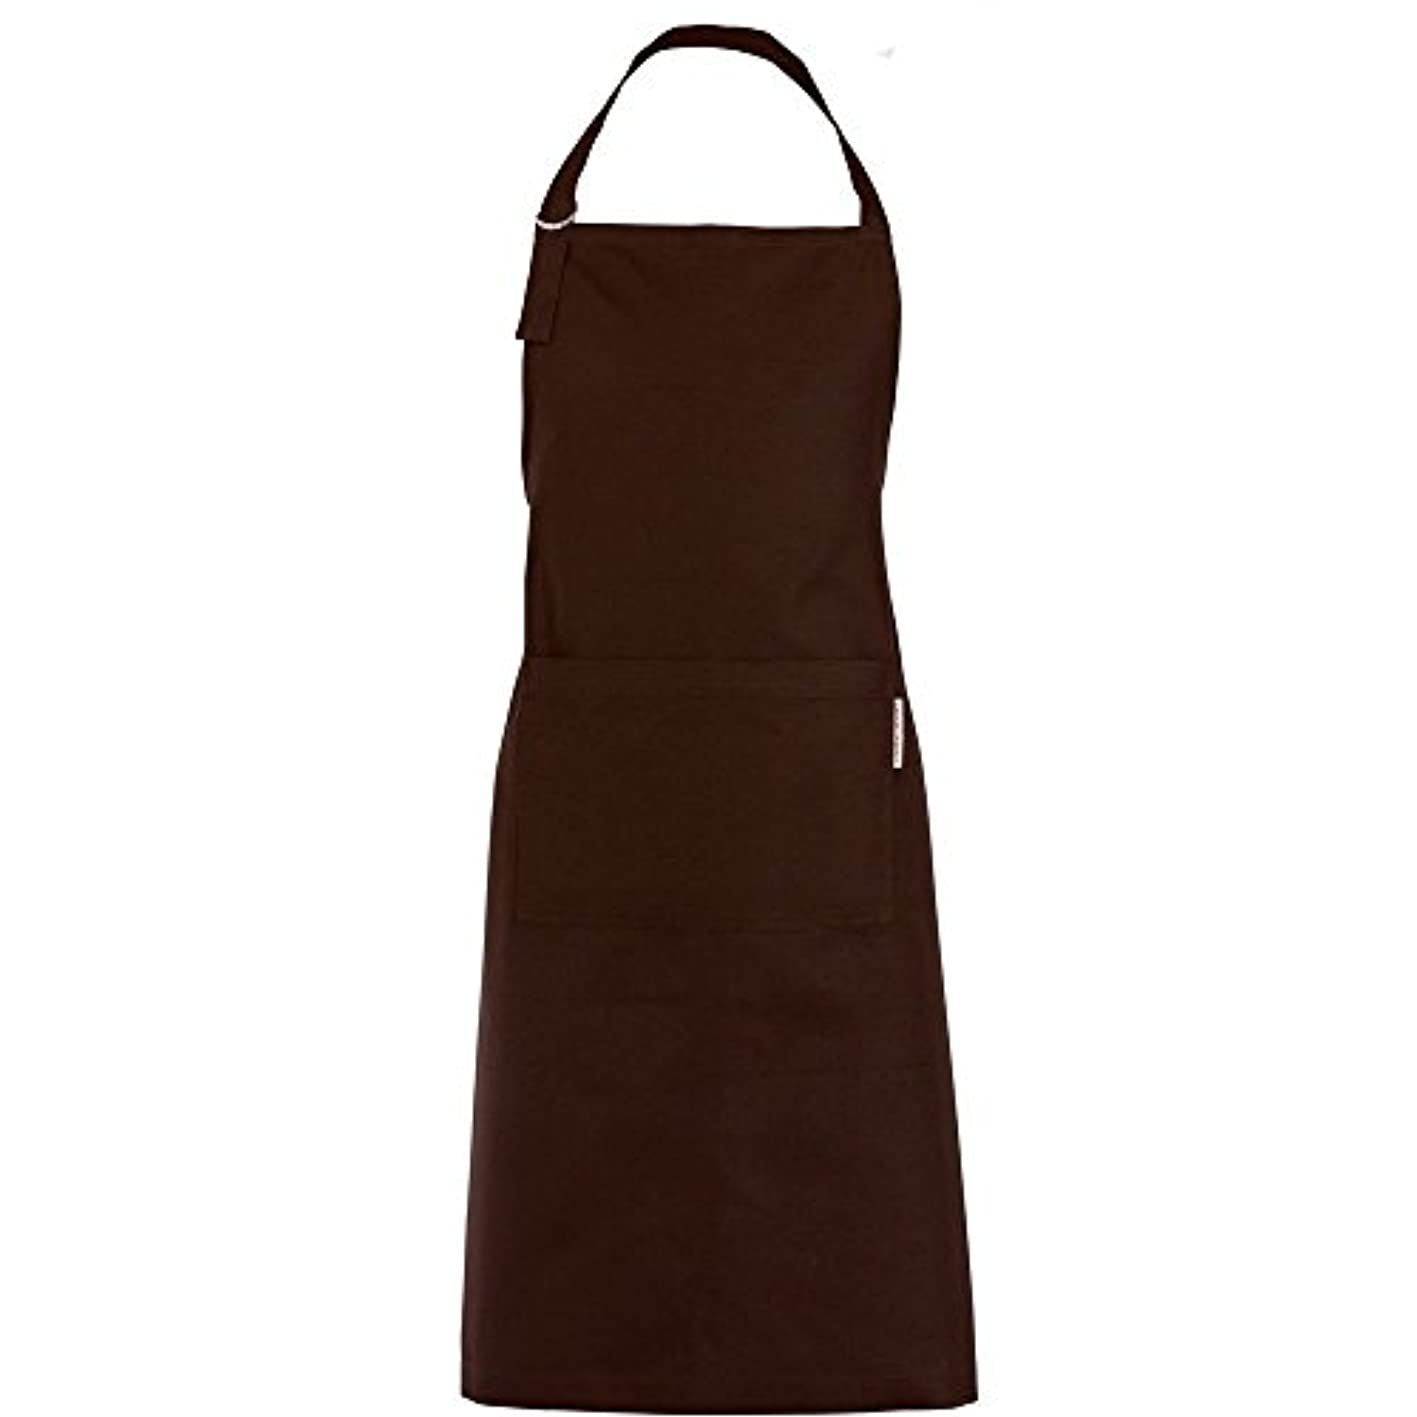 Garnier Thiebaut Mens Apron Cannele Cacao, 100% two-ply twisted cotton, Made in France ipqakluarus301